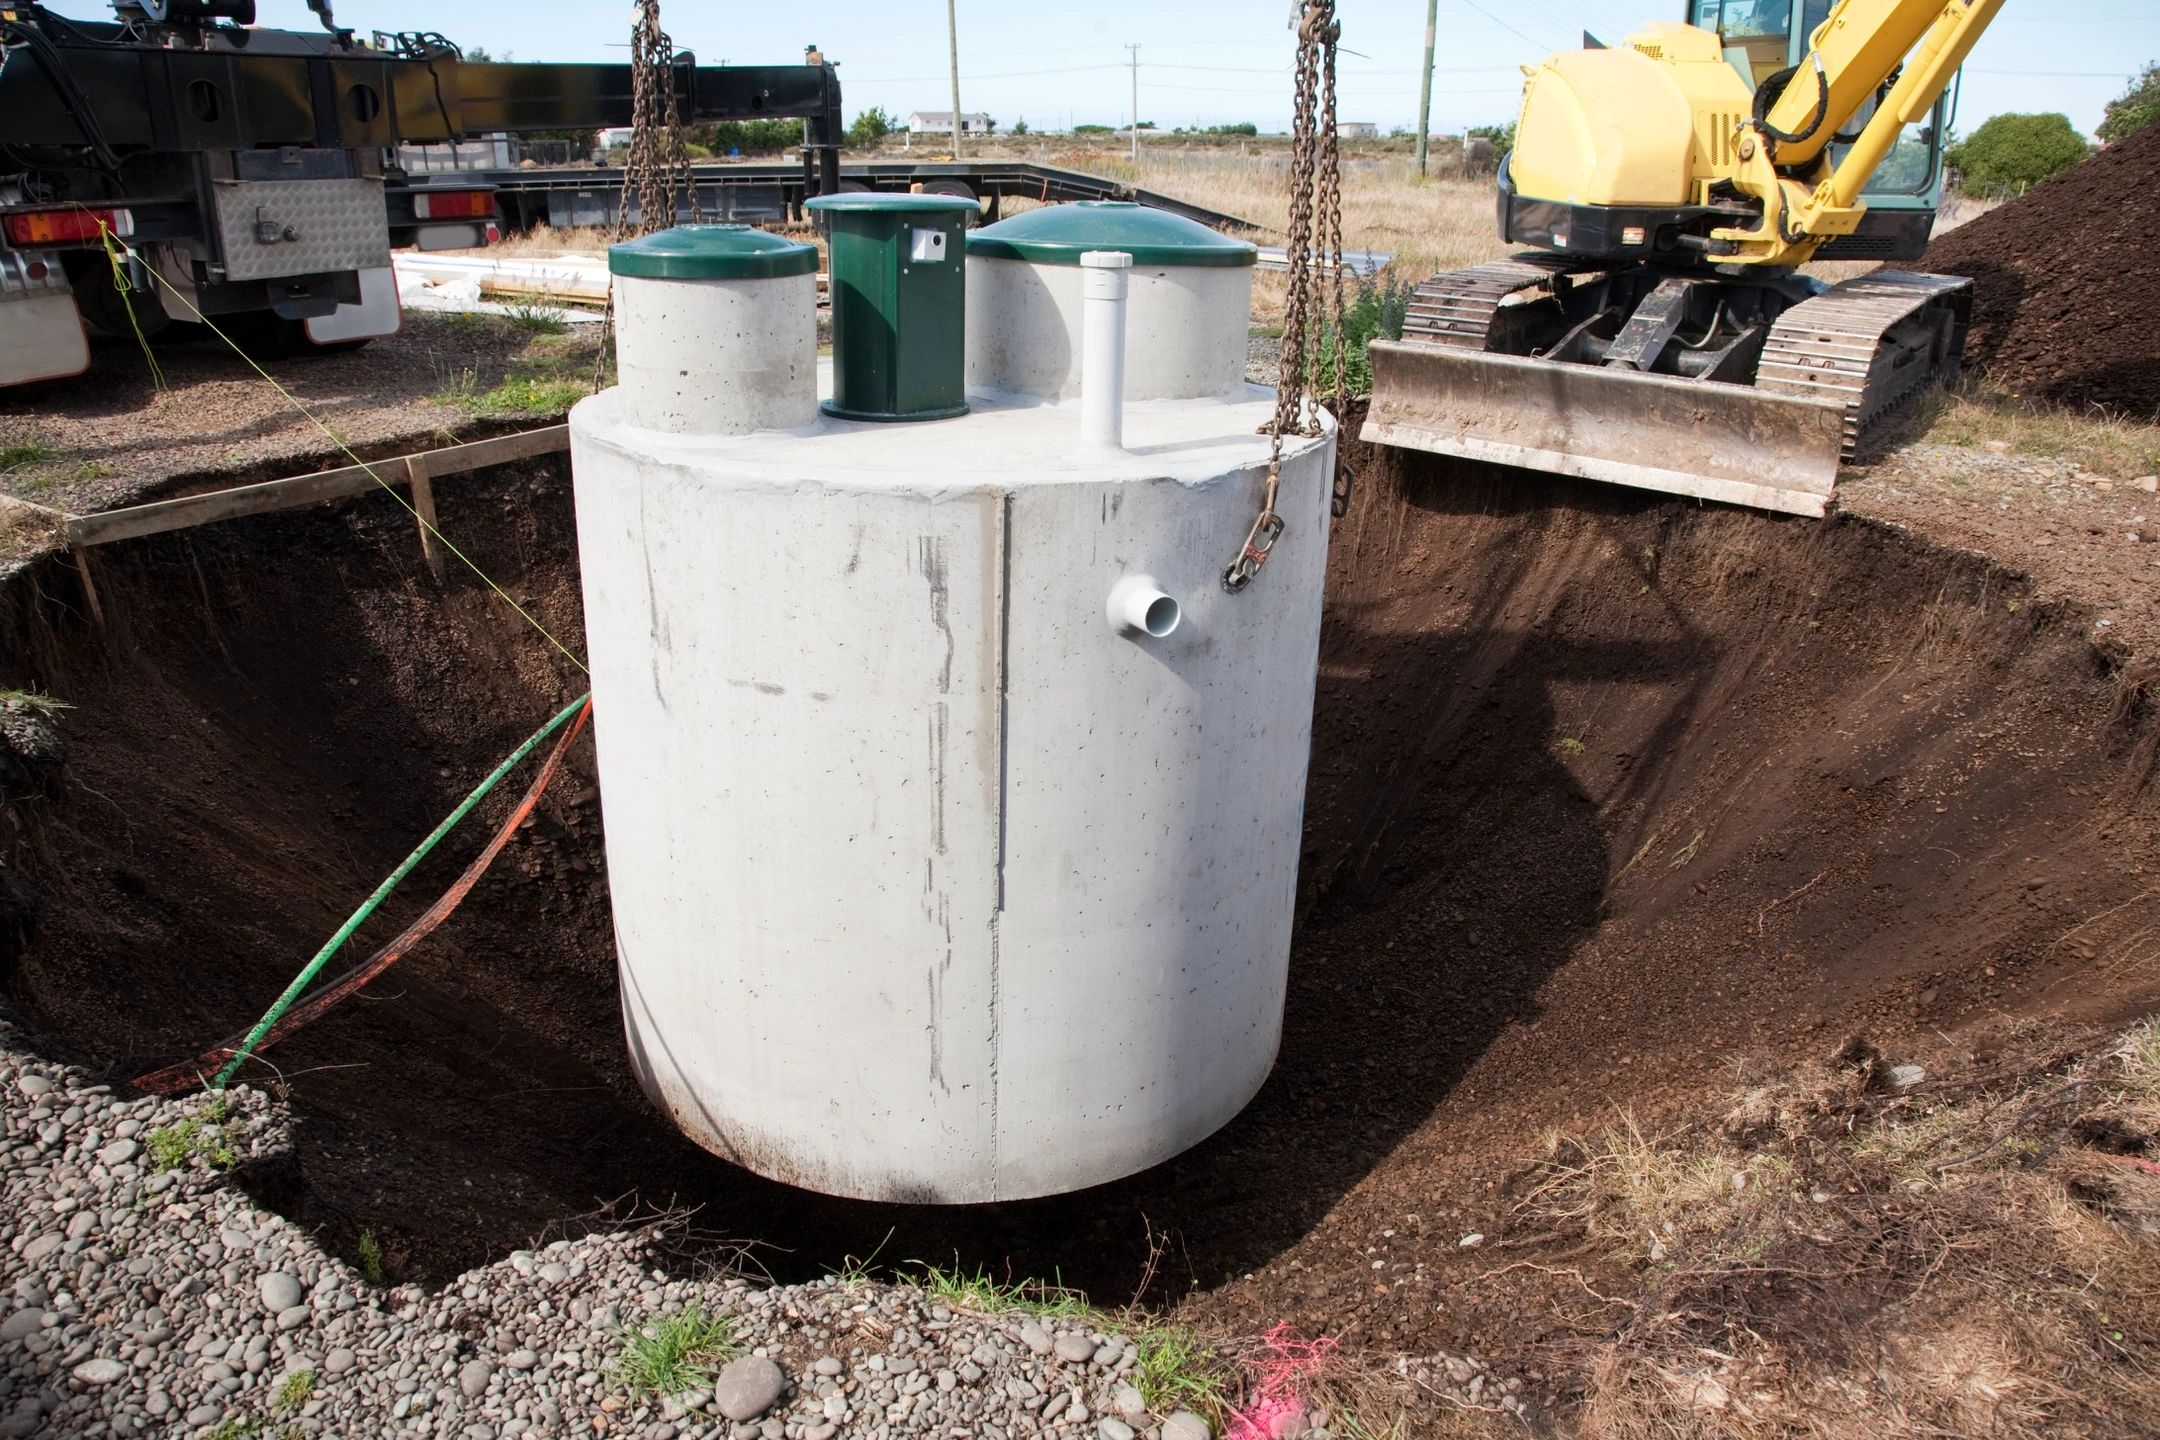 A septic system tank